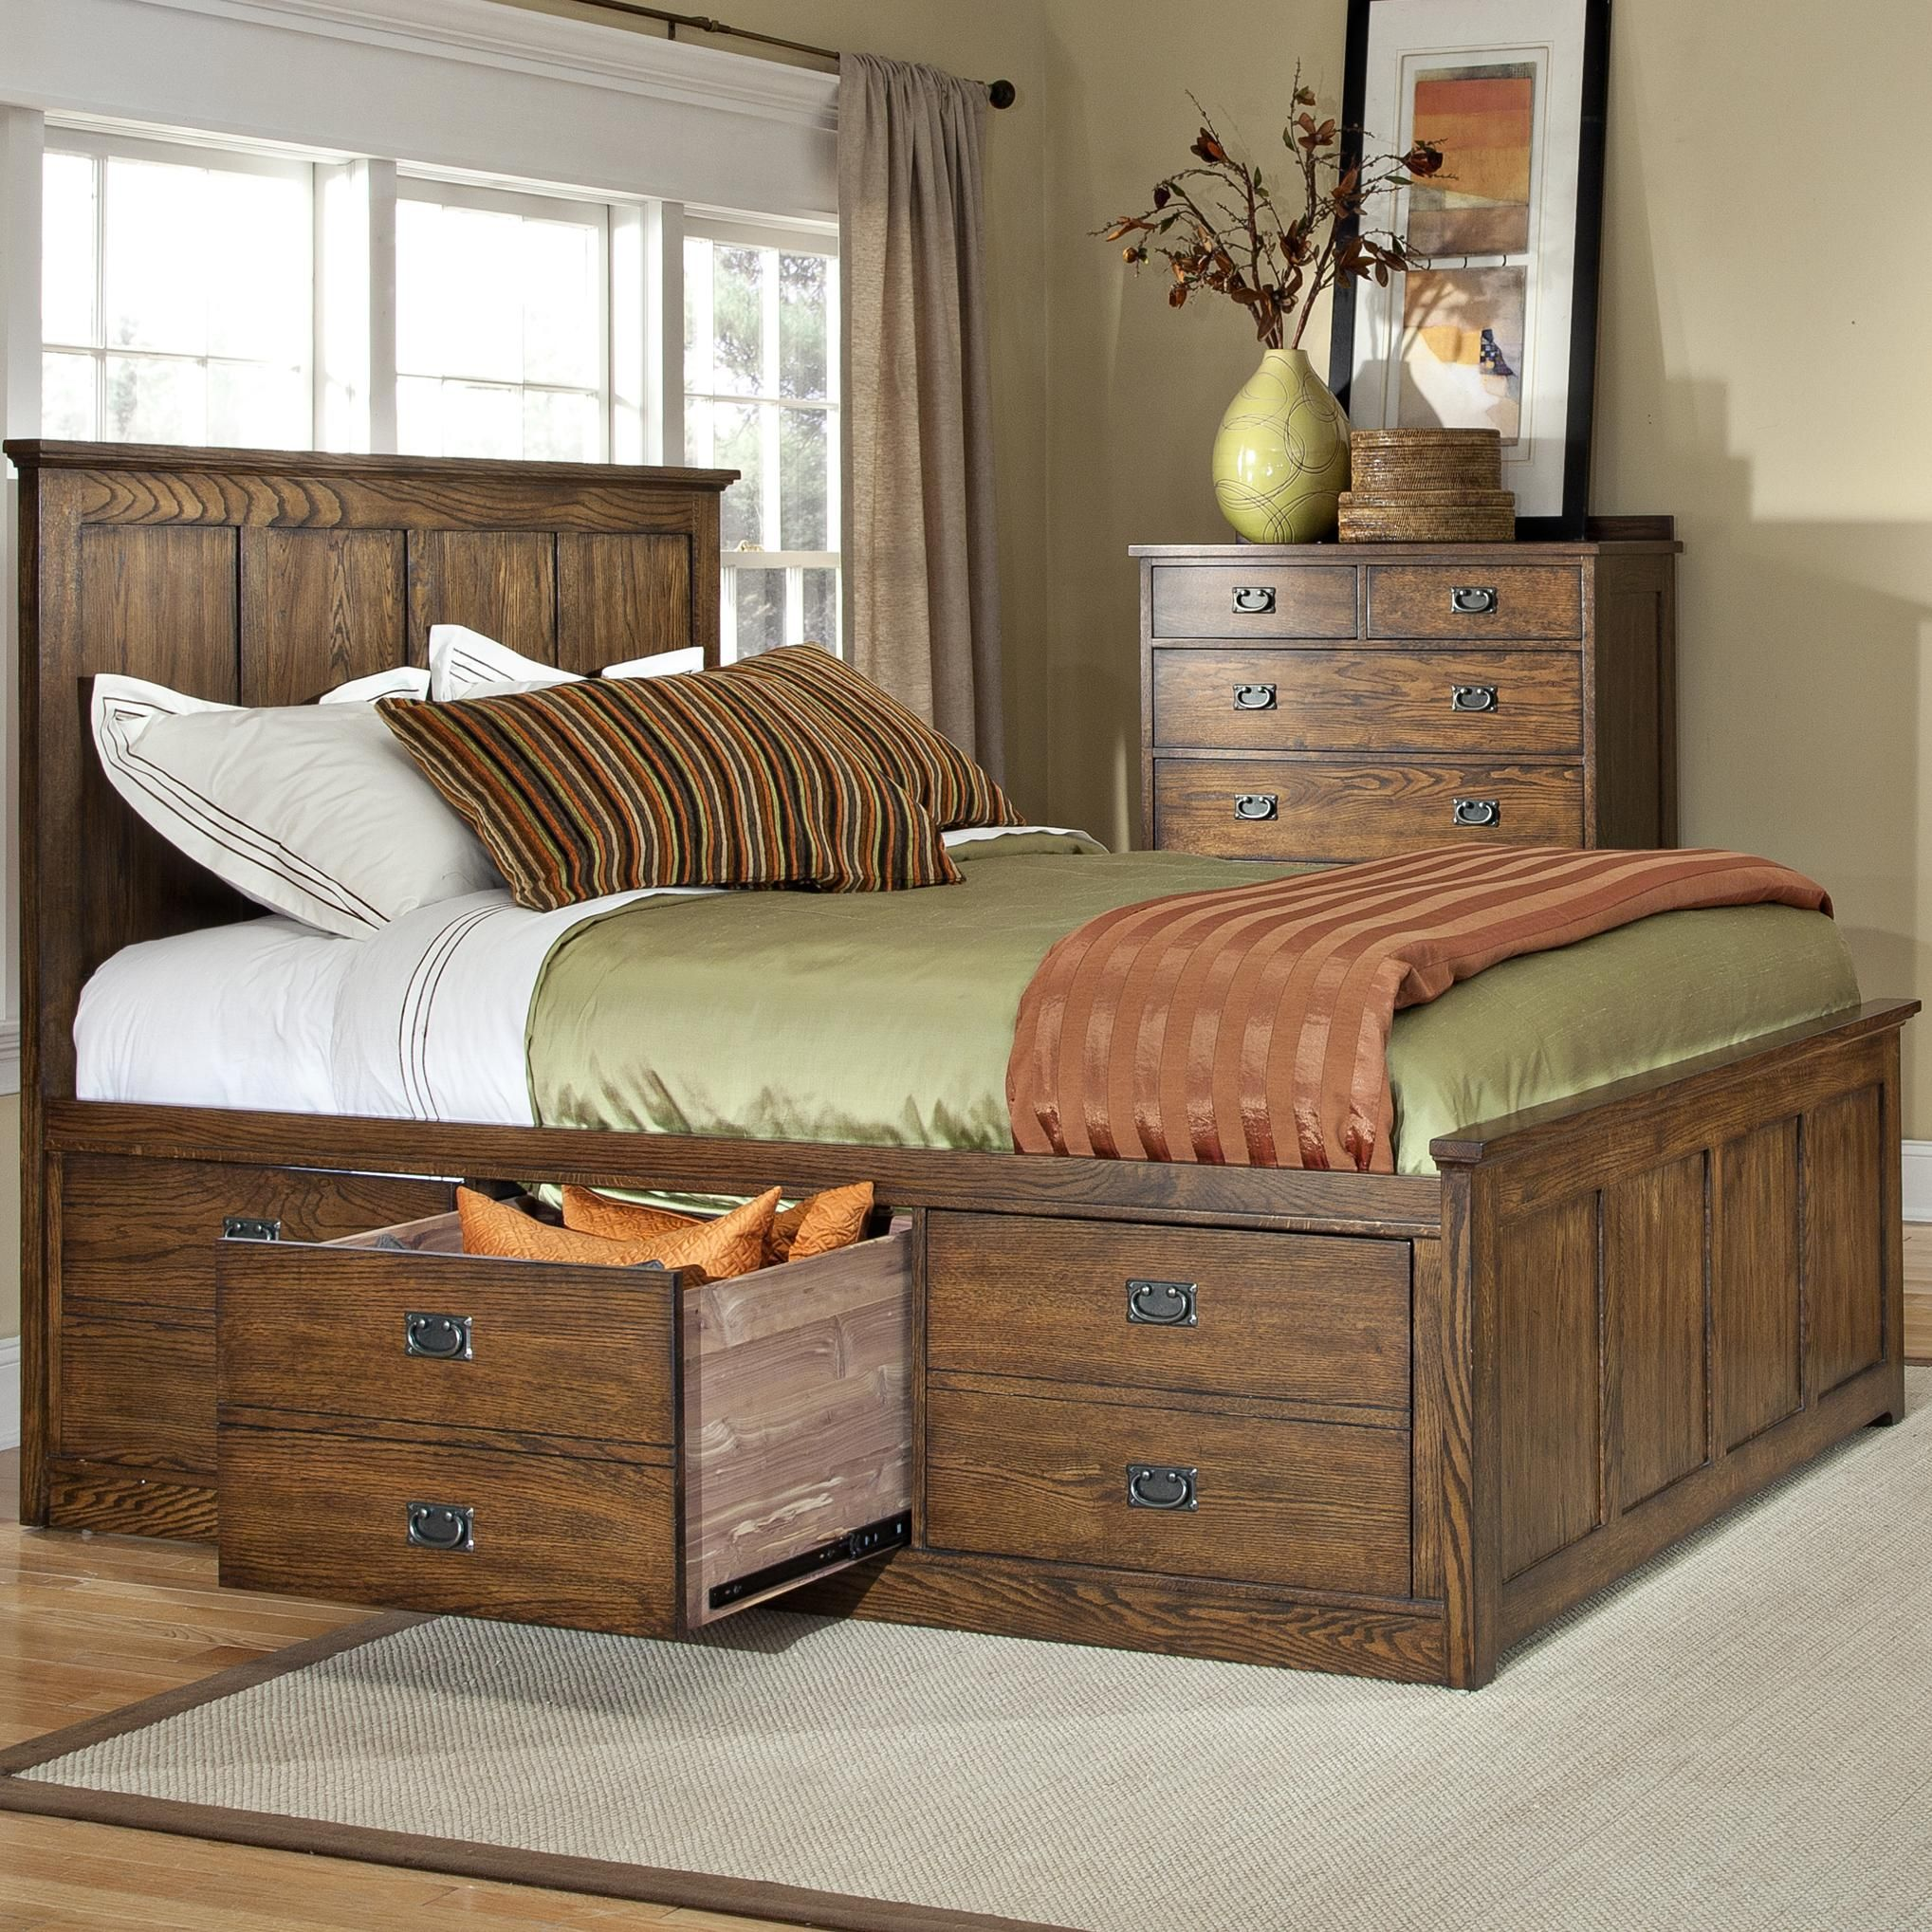 oak park california king bed with 6 storage drawers by 20640 | dbd5cfdc03c54802d854f700a5b517f5